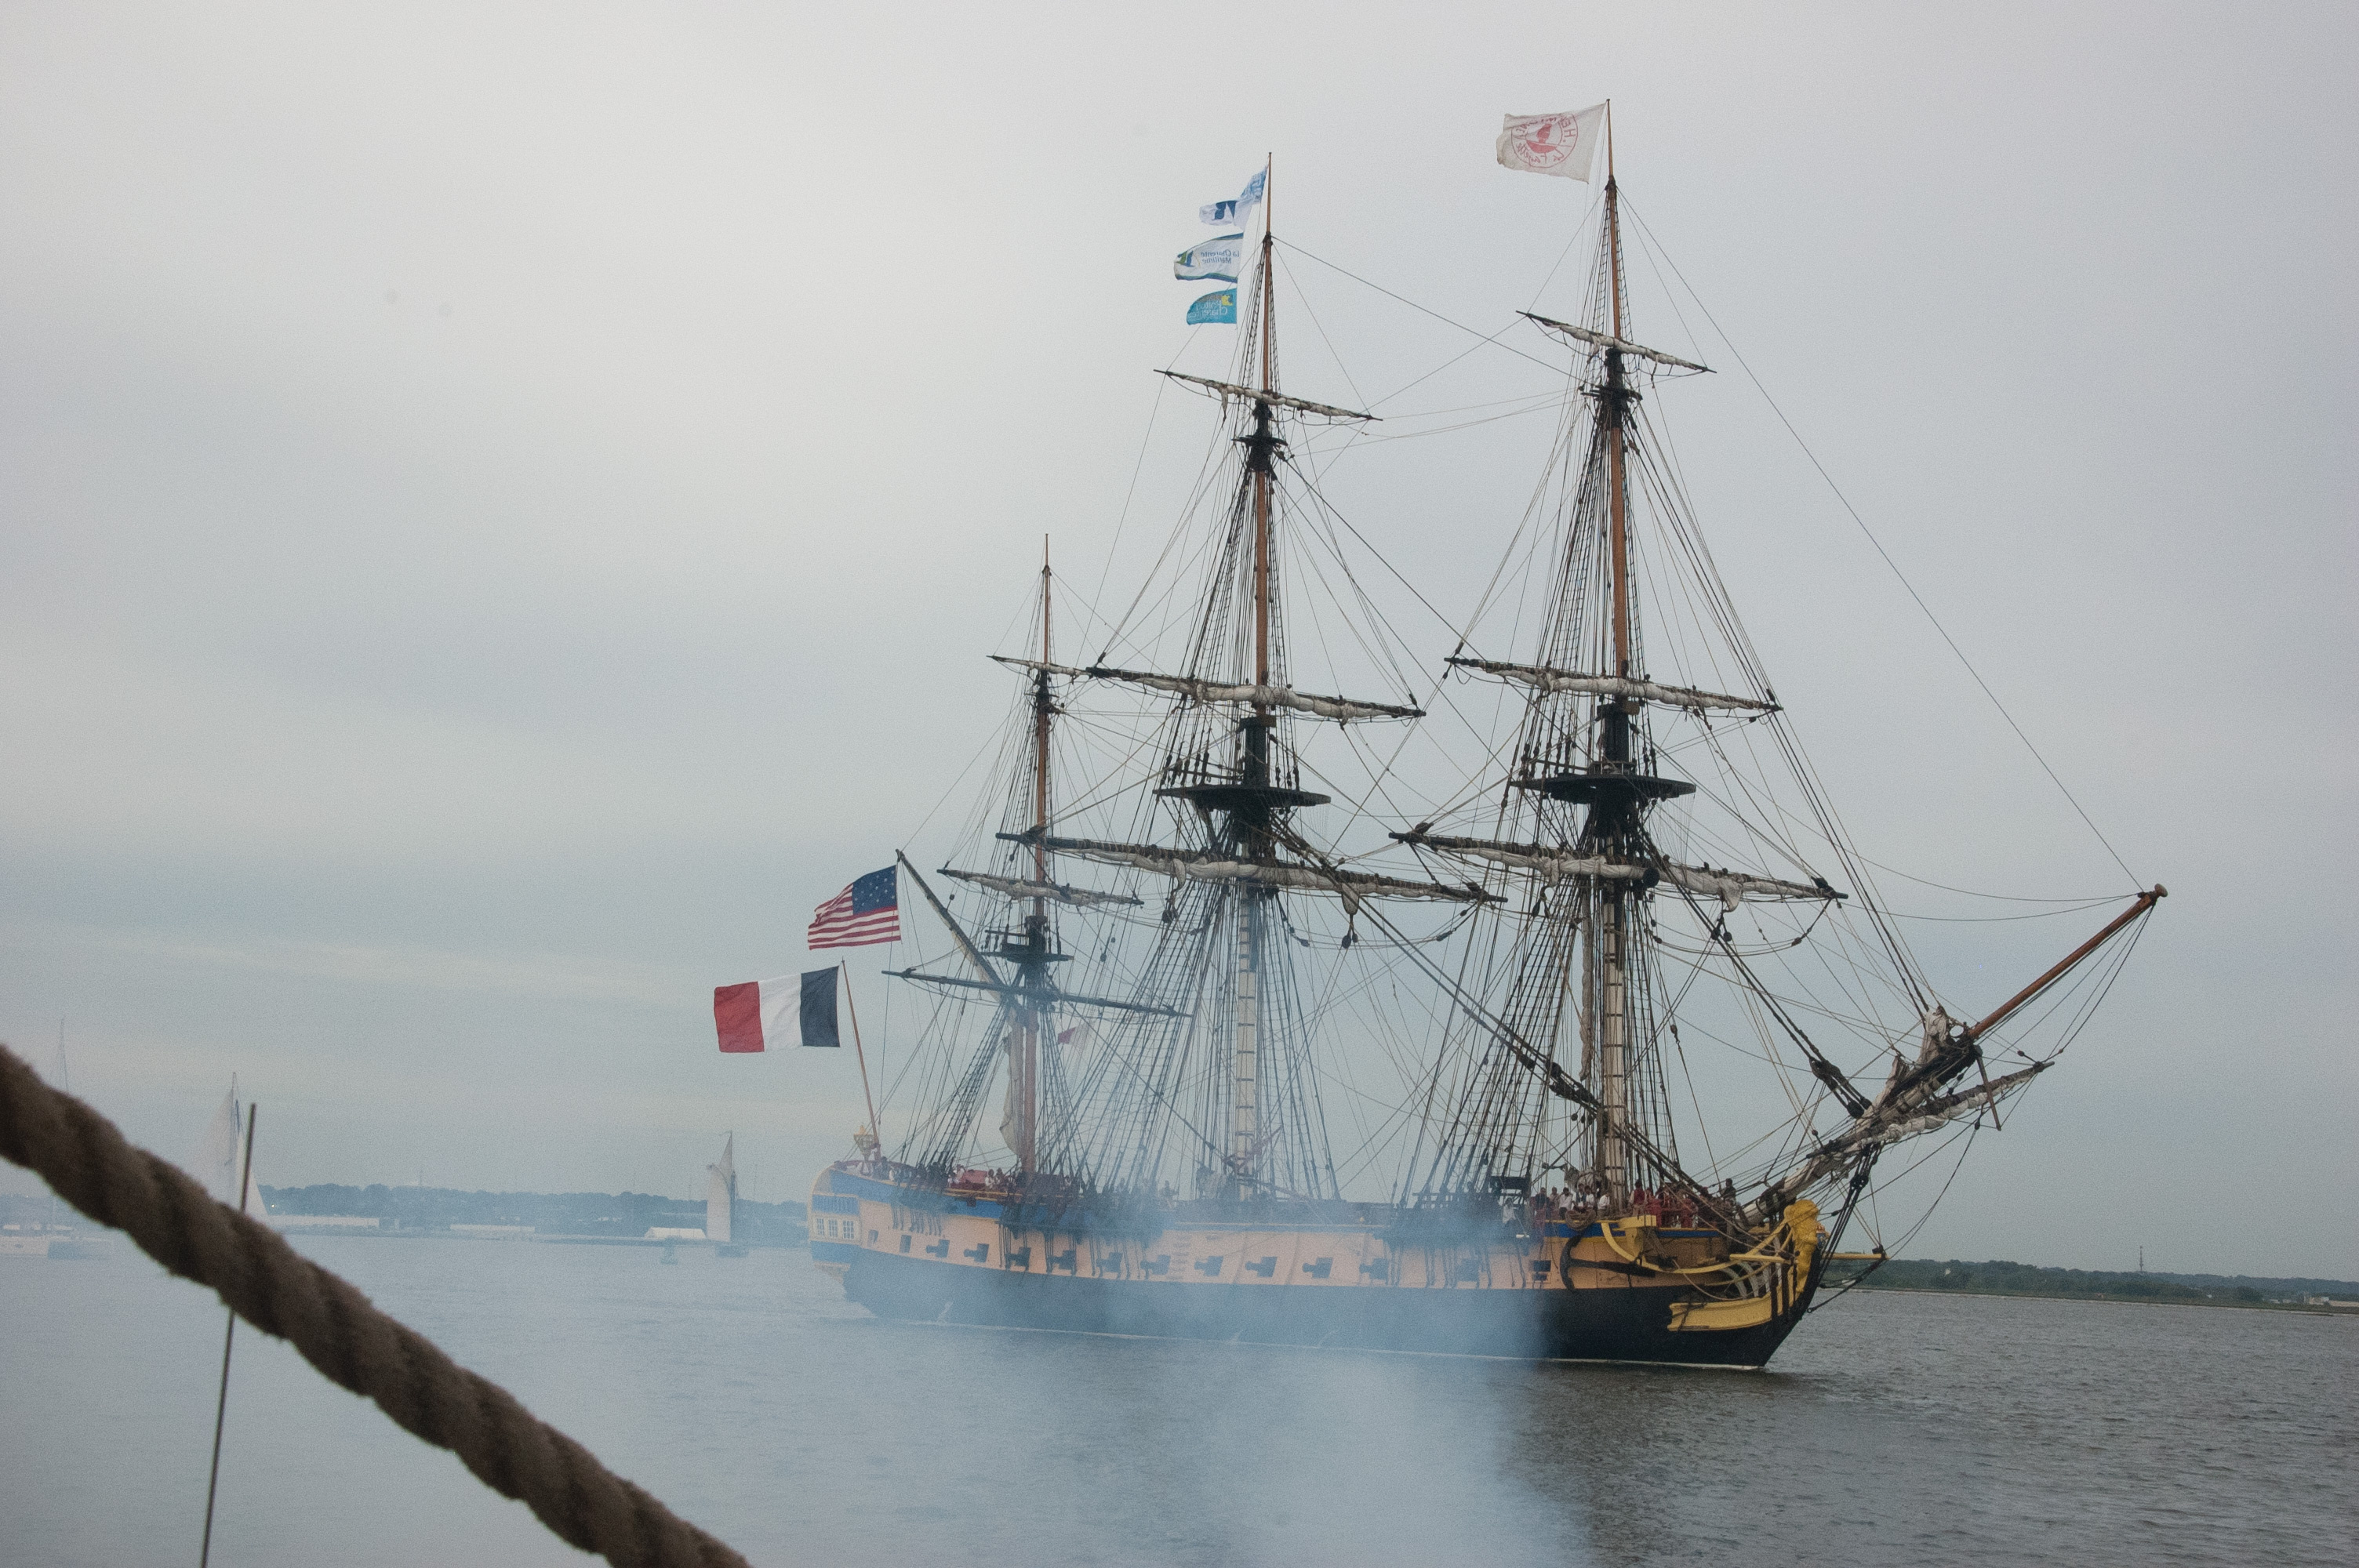 The replica French frigate Hermione shot several blank rounds to greet Baltimore as it sailed into the Inner Harbor. USNI News photo.